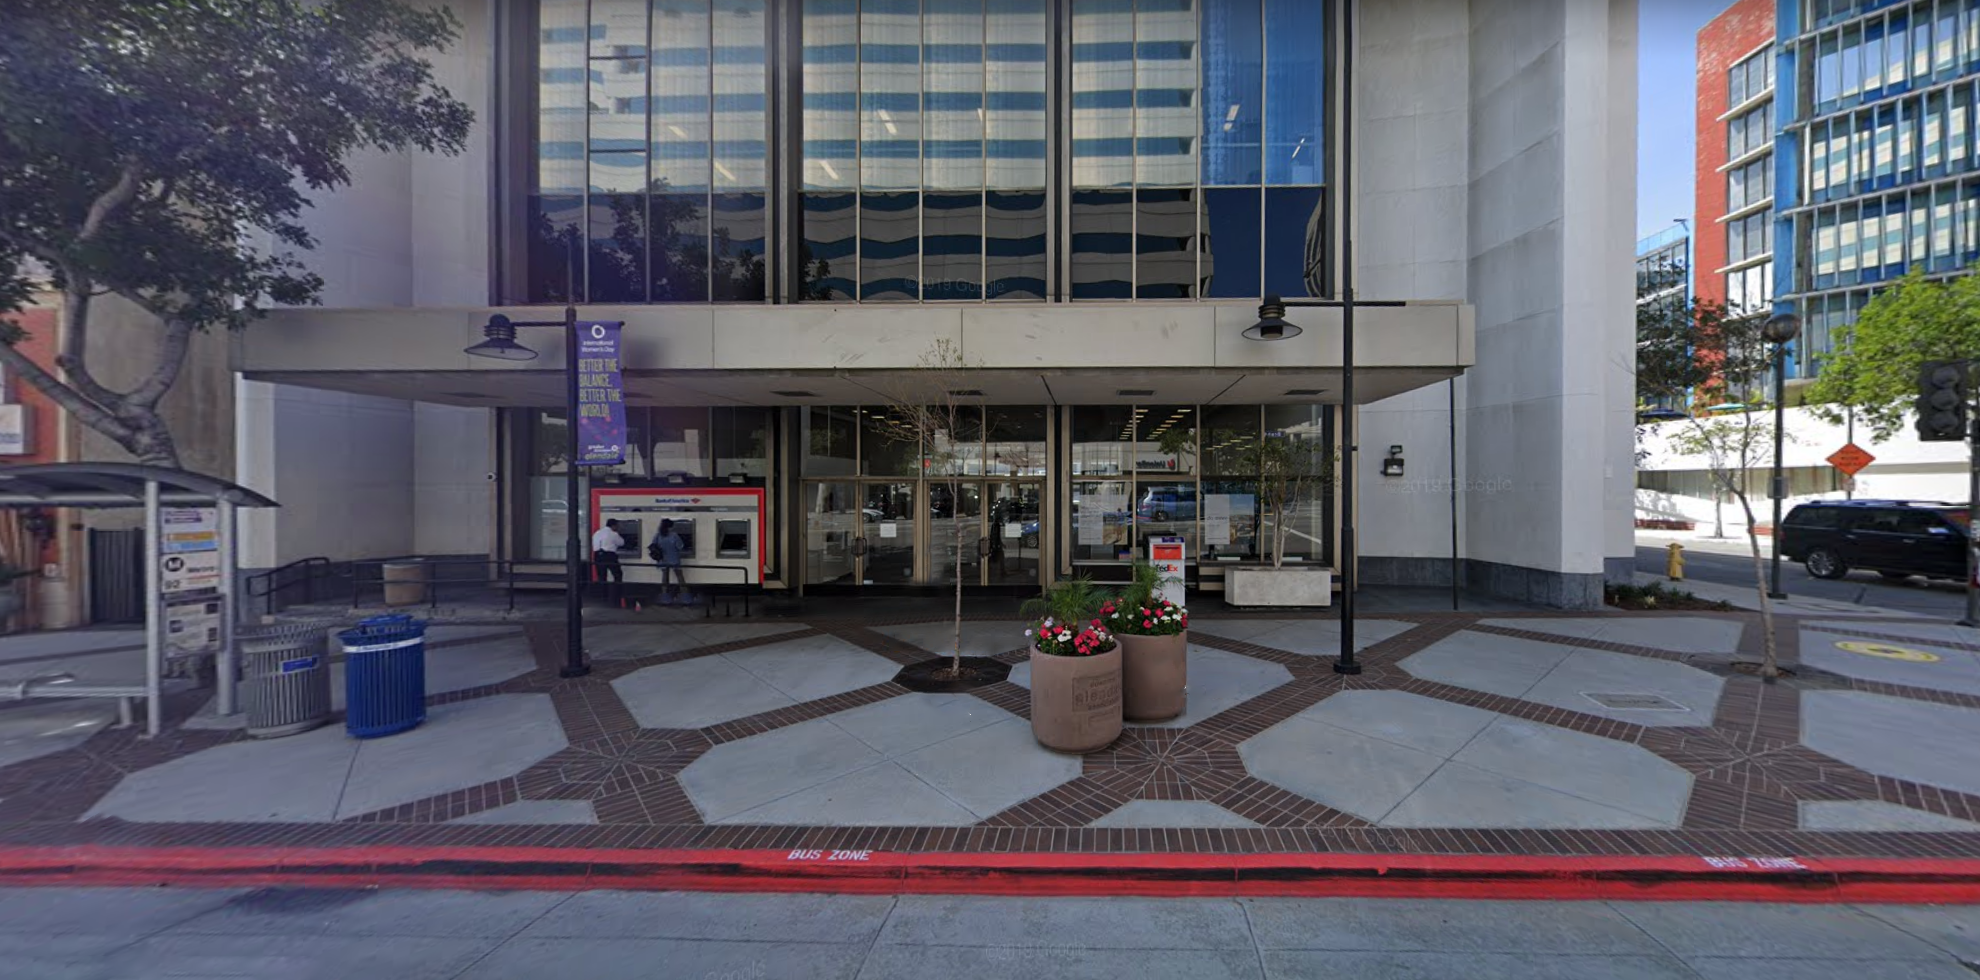 Bank of America financial center with walk-up ATM   345 N Brand Blvd, Glendale, CA 91203